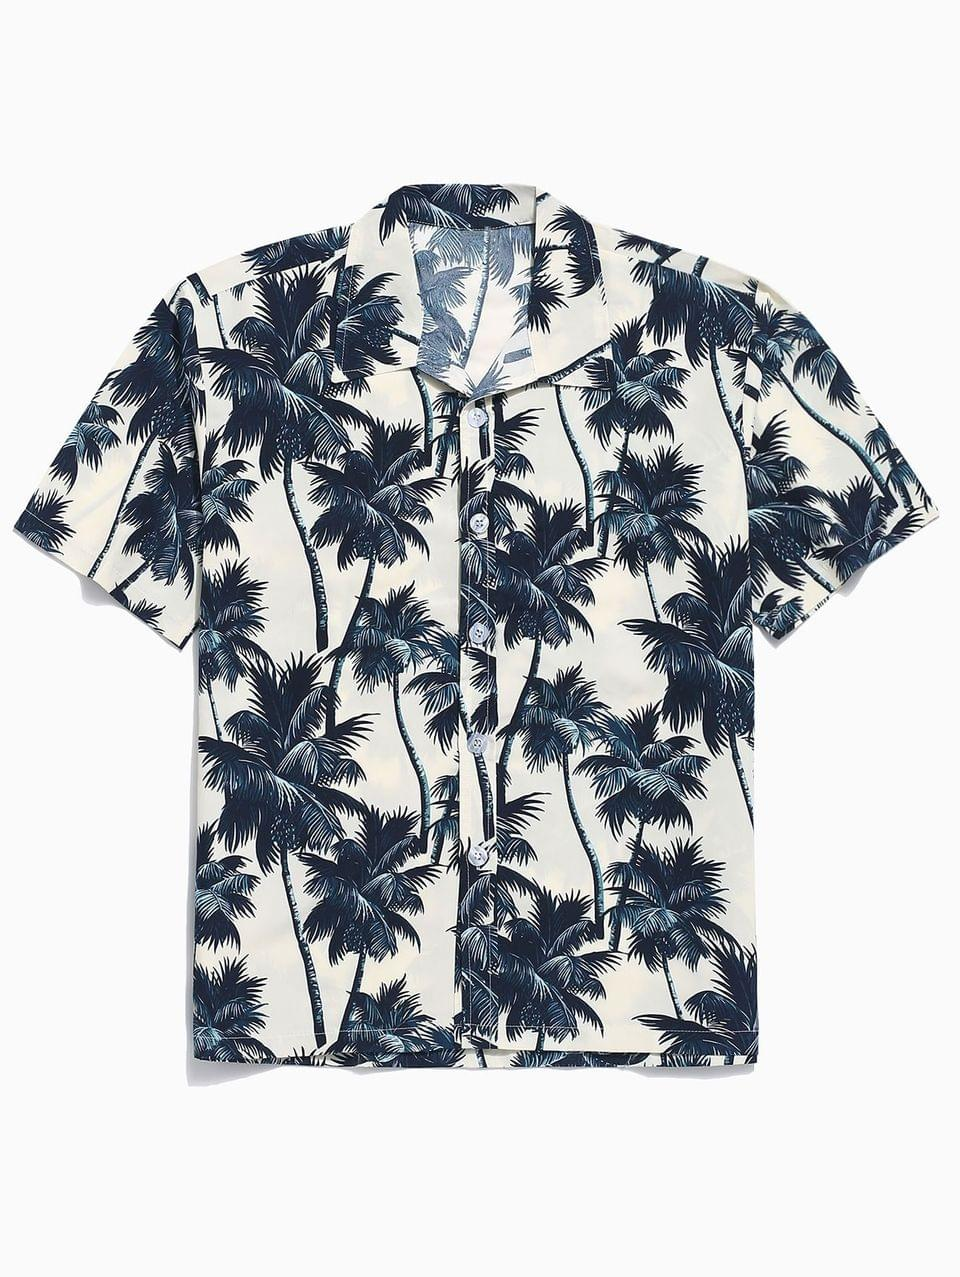 Men's Palm Tree Allover Print Hawaii Board Shirt - Apricot S